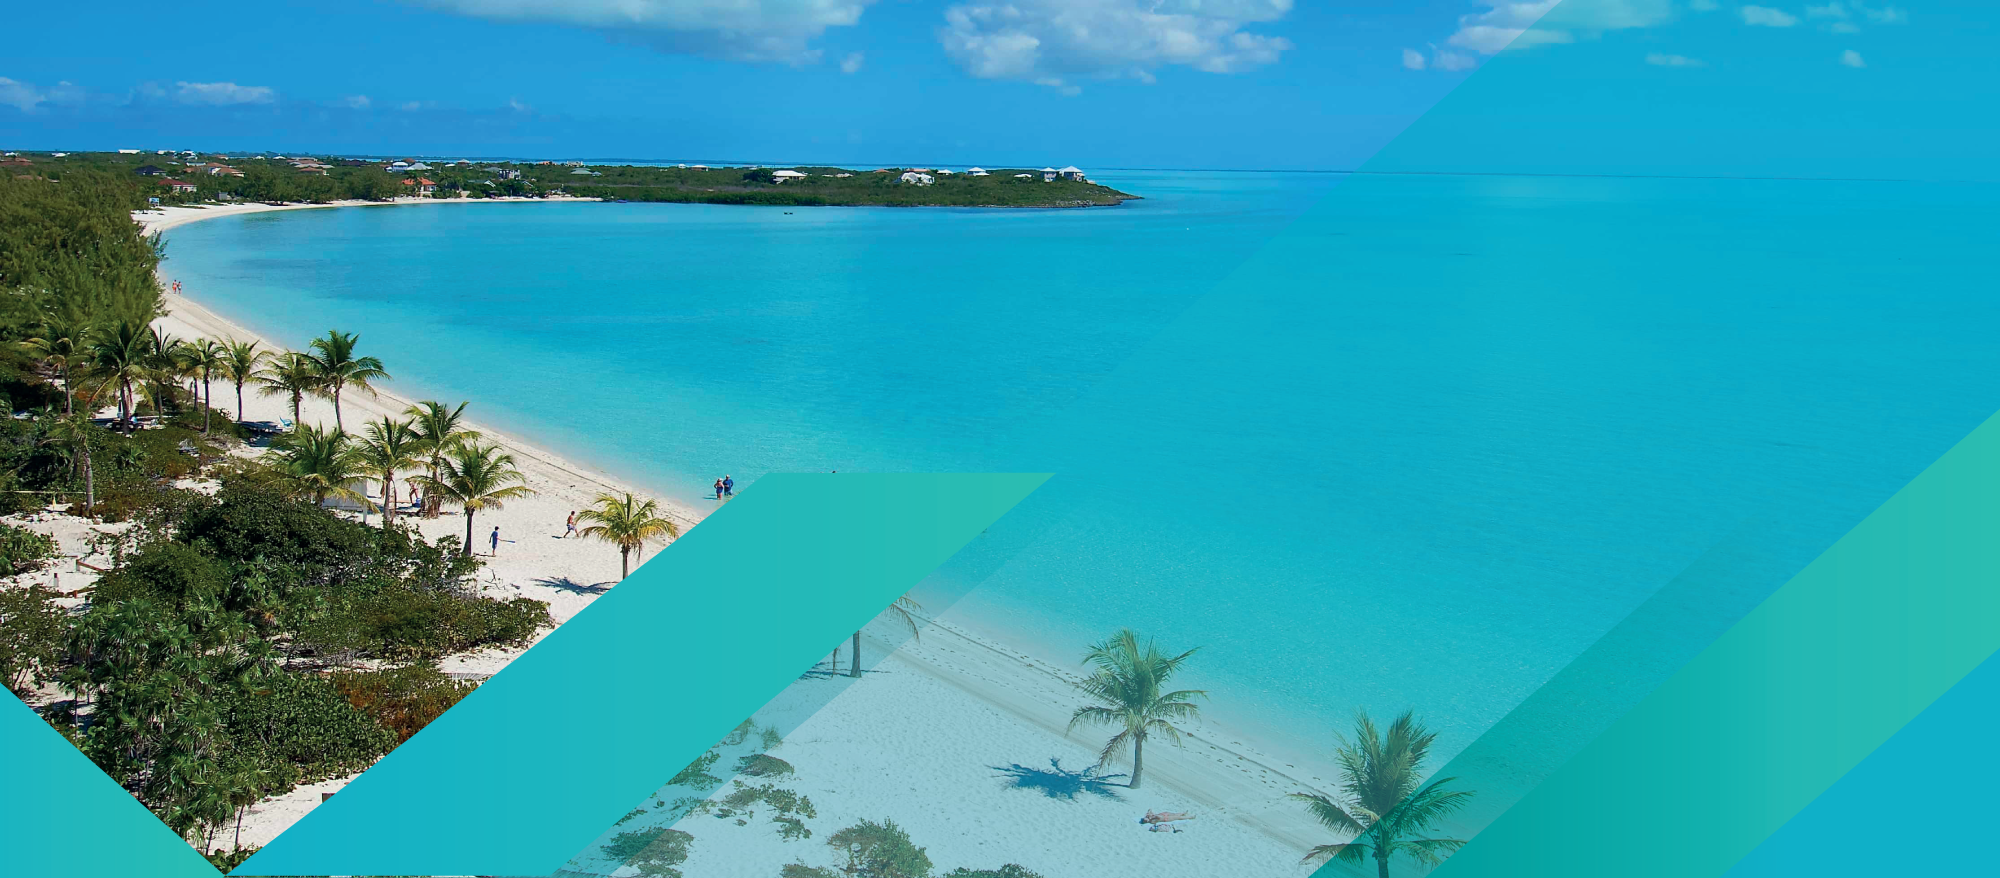 Beachfront Condos for sales - Kiteboarding Turks and Caicos